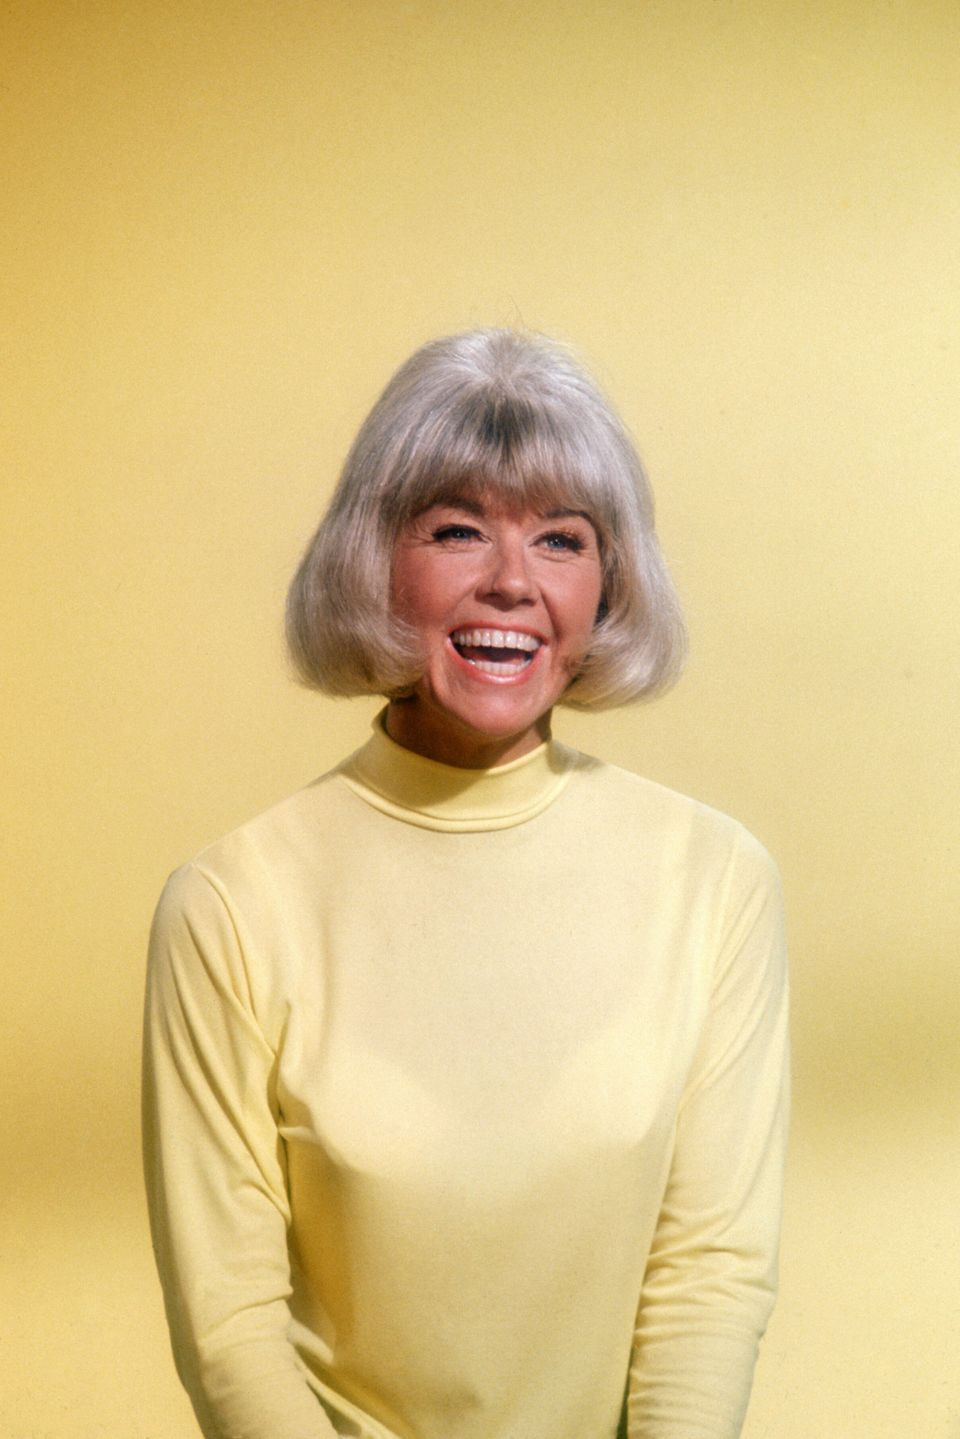 Westlake Legal Group 5cd97df12100003500d06648 A Look Back At Doris Day's Life And Career In Photos